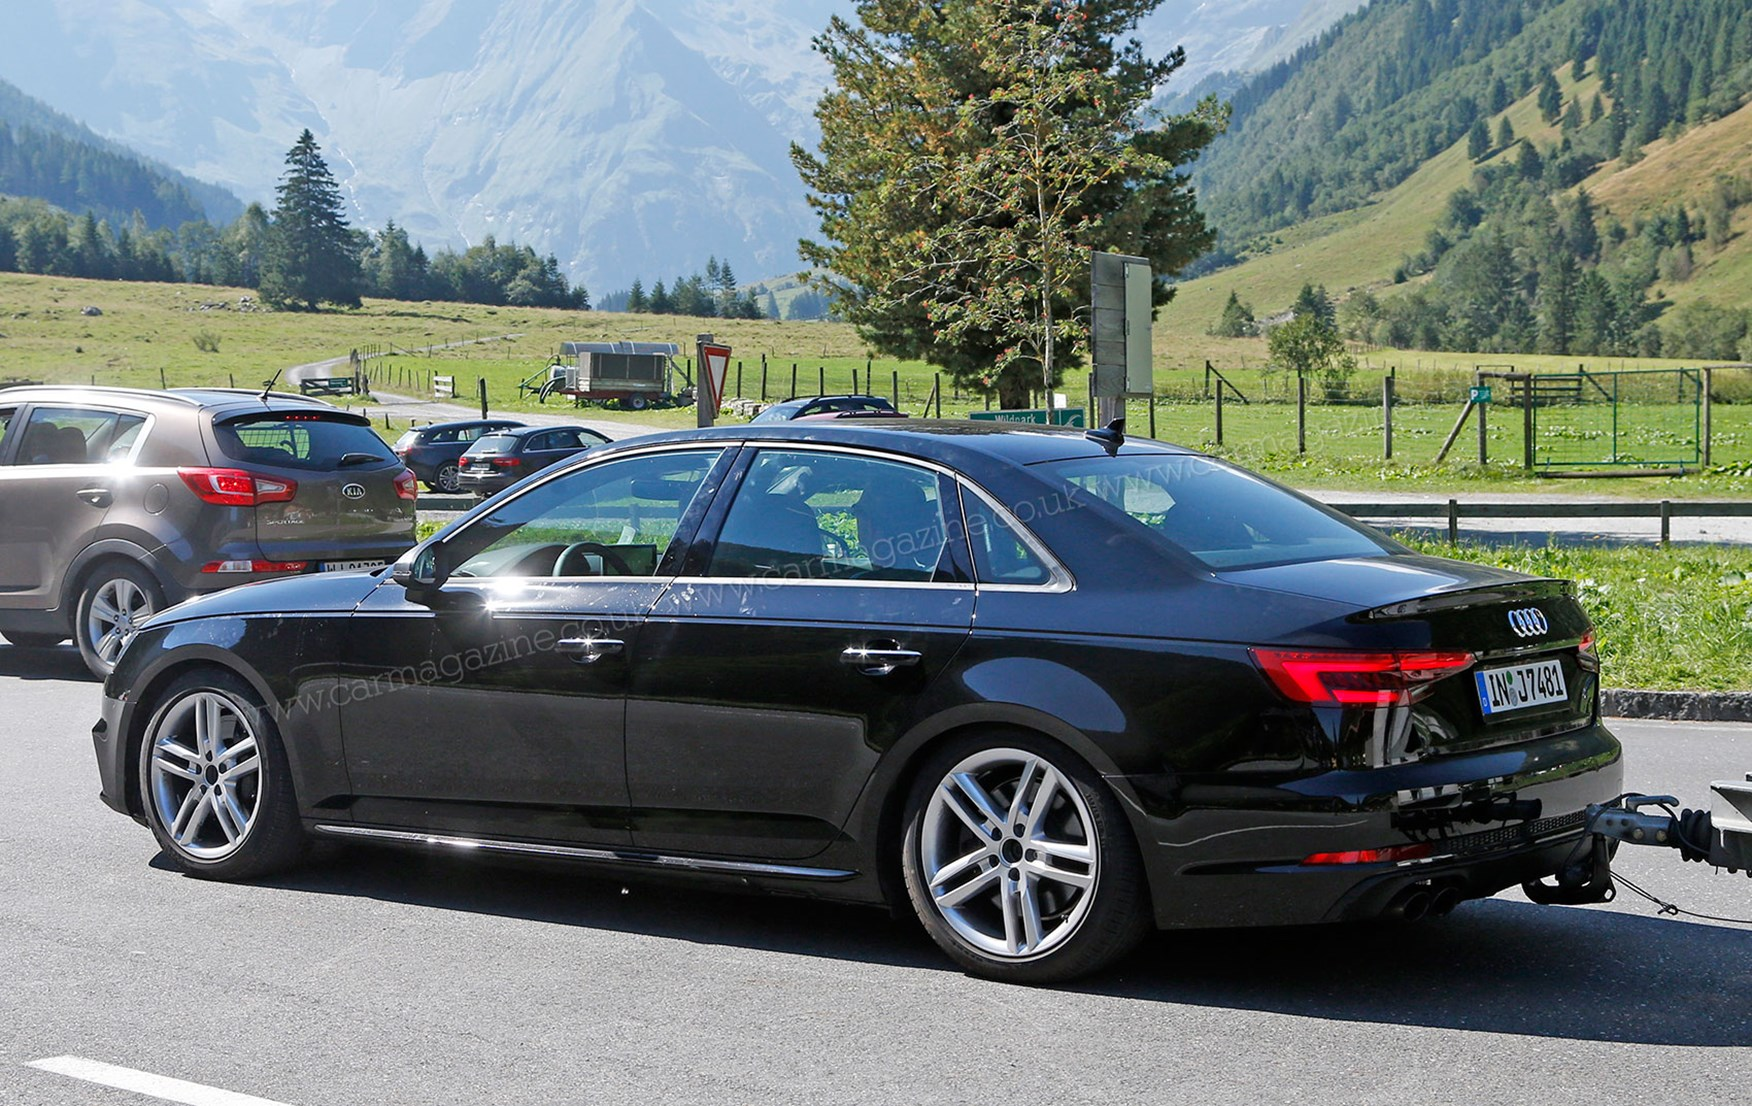 ... Audi S4 prototype testing at the Nurburgring, 2015 New Audi S4 will be